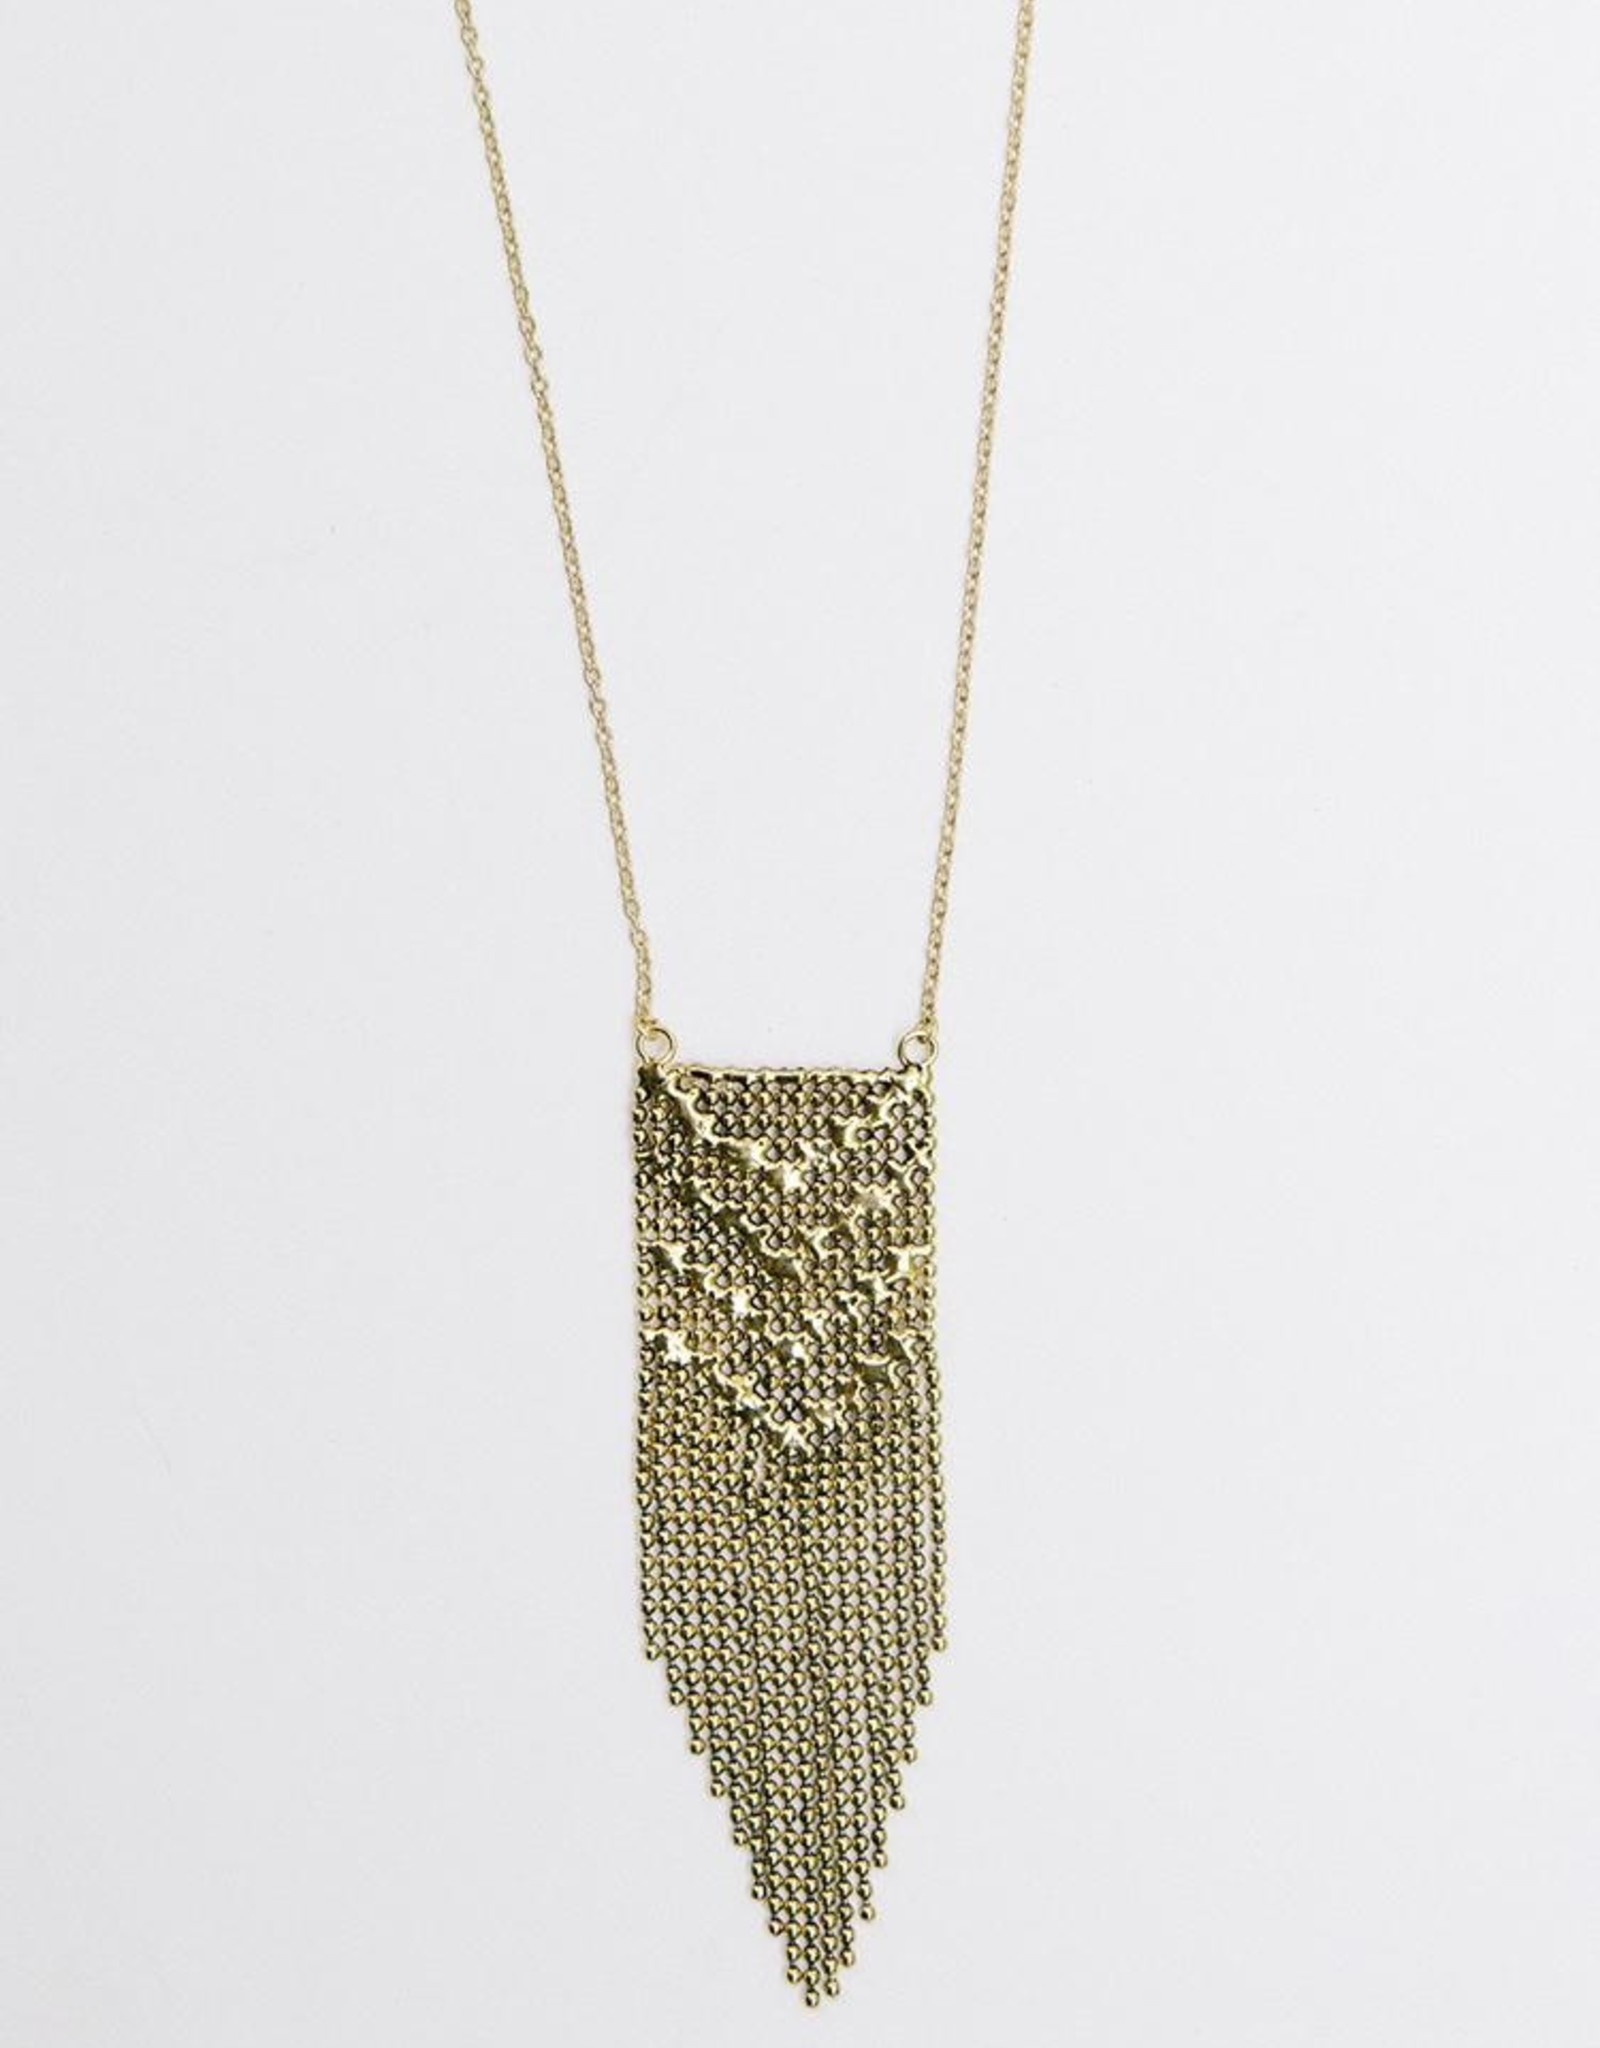 India, Metal Work Necklace SIlver or Gold